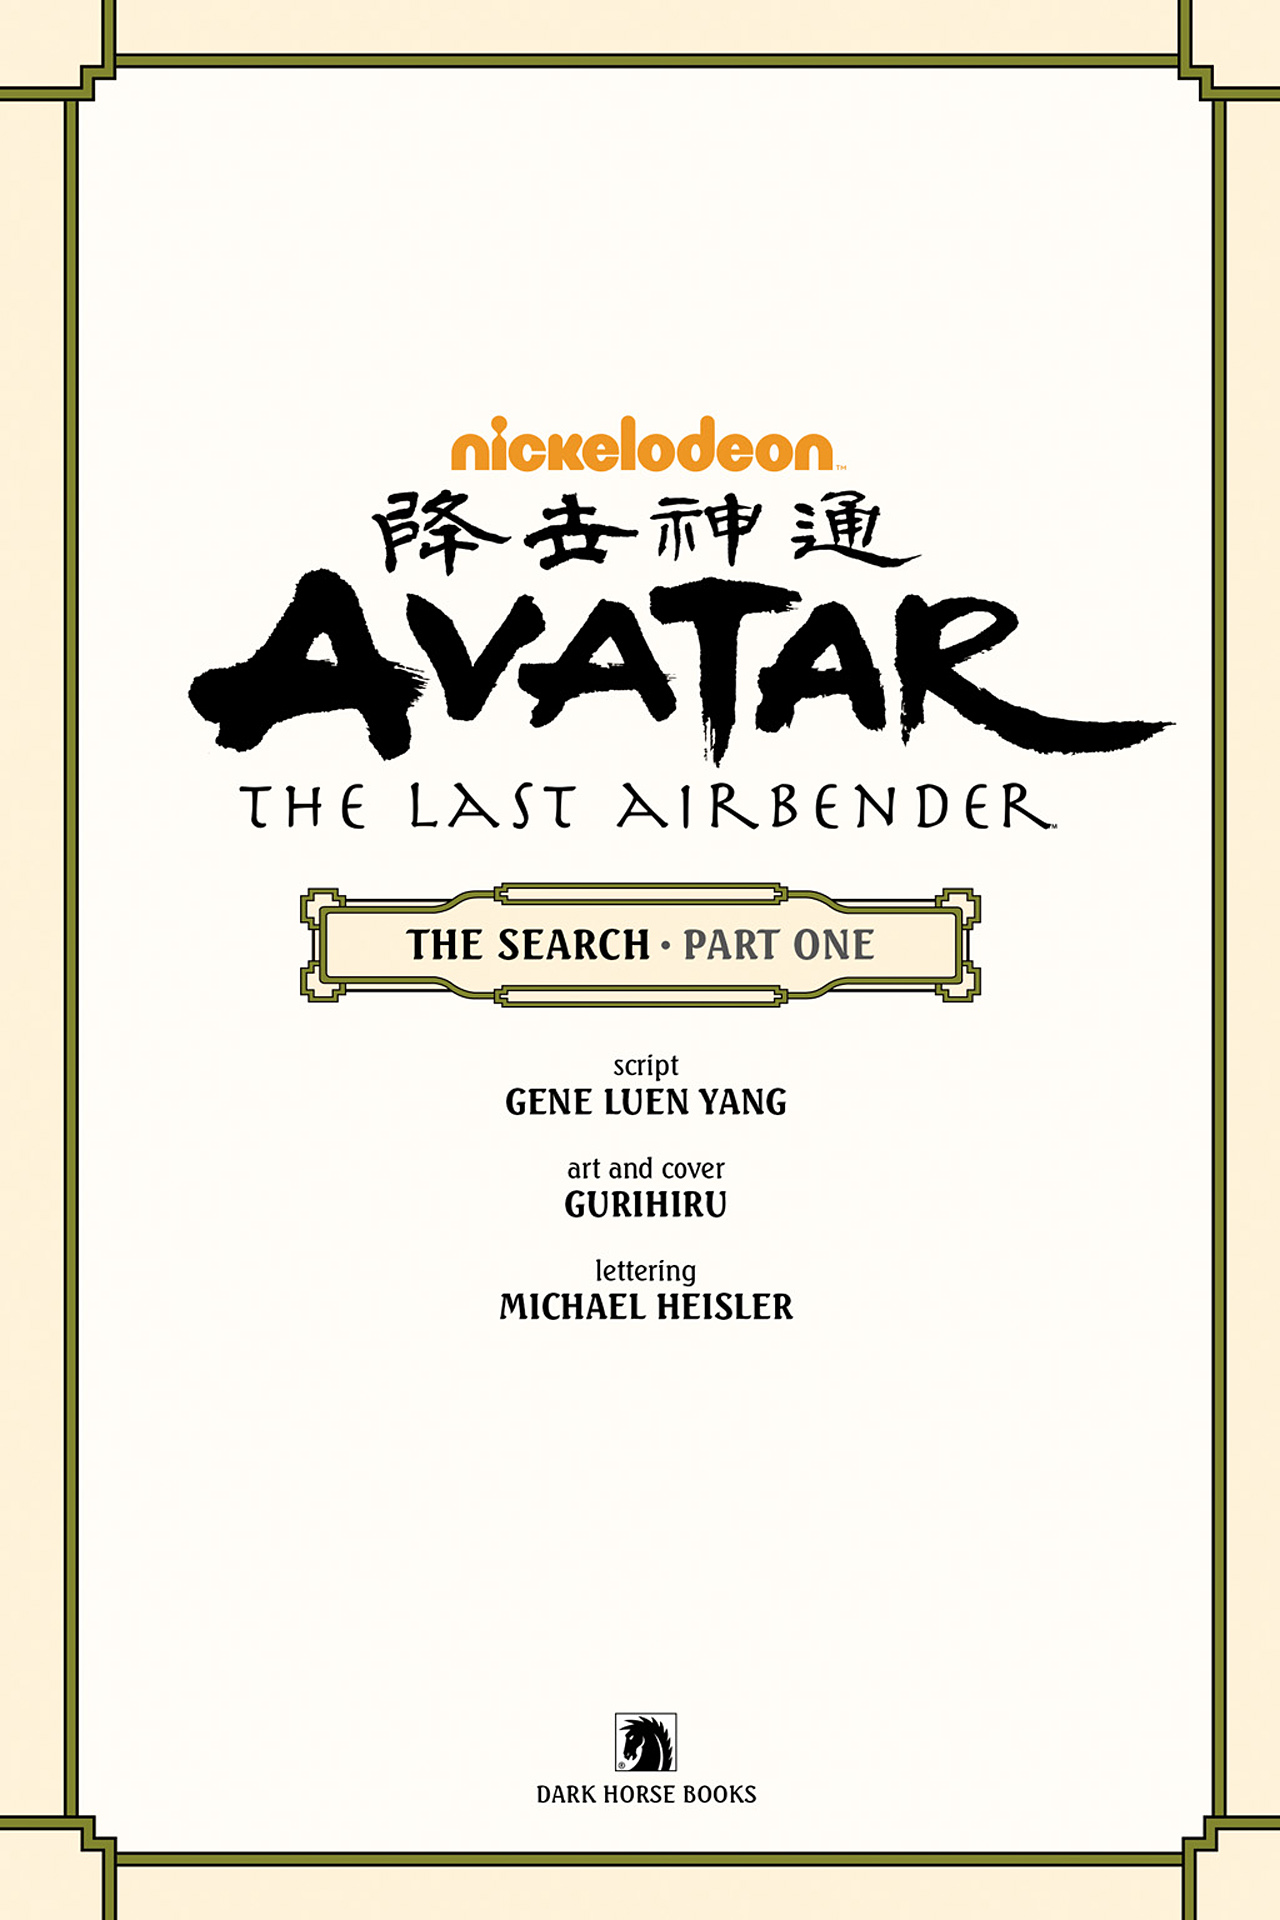 Read online Nickelodeon Avatar: The Last Airbender - The Search comic -  Issue # Part 1 - 4